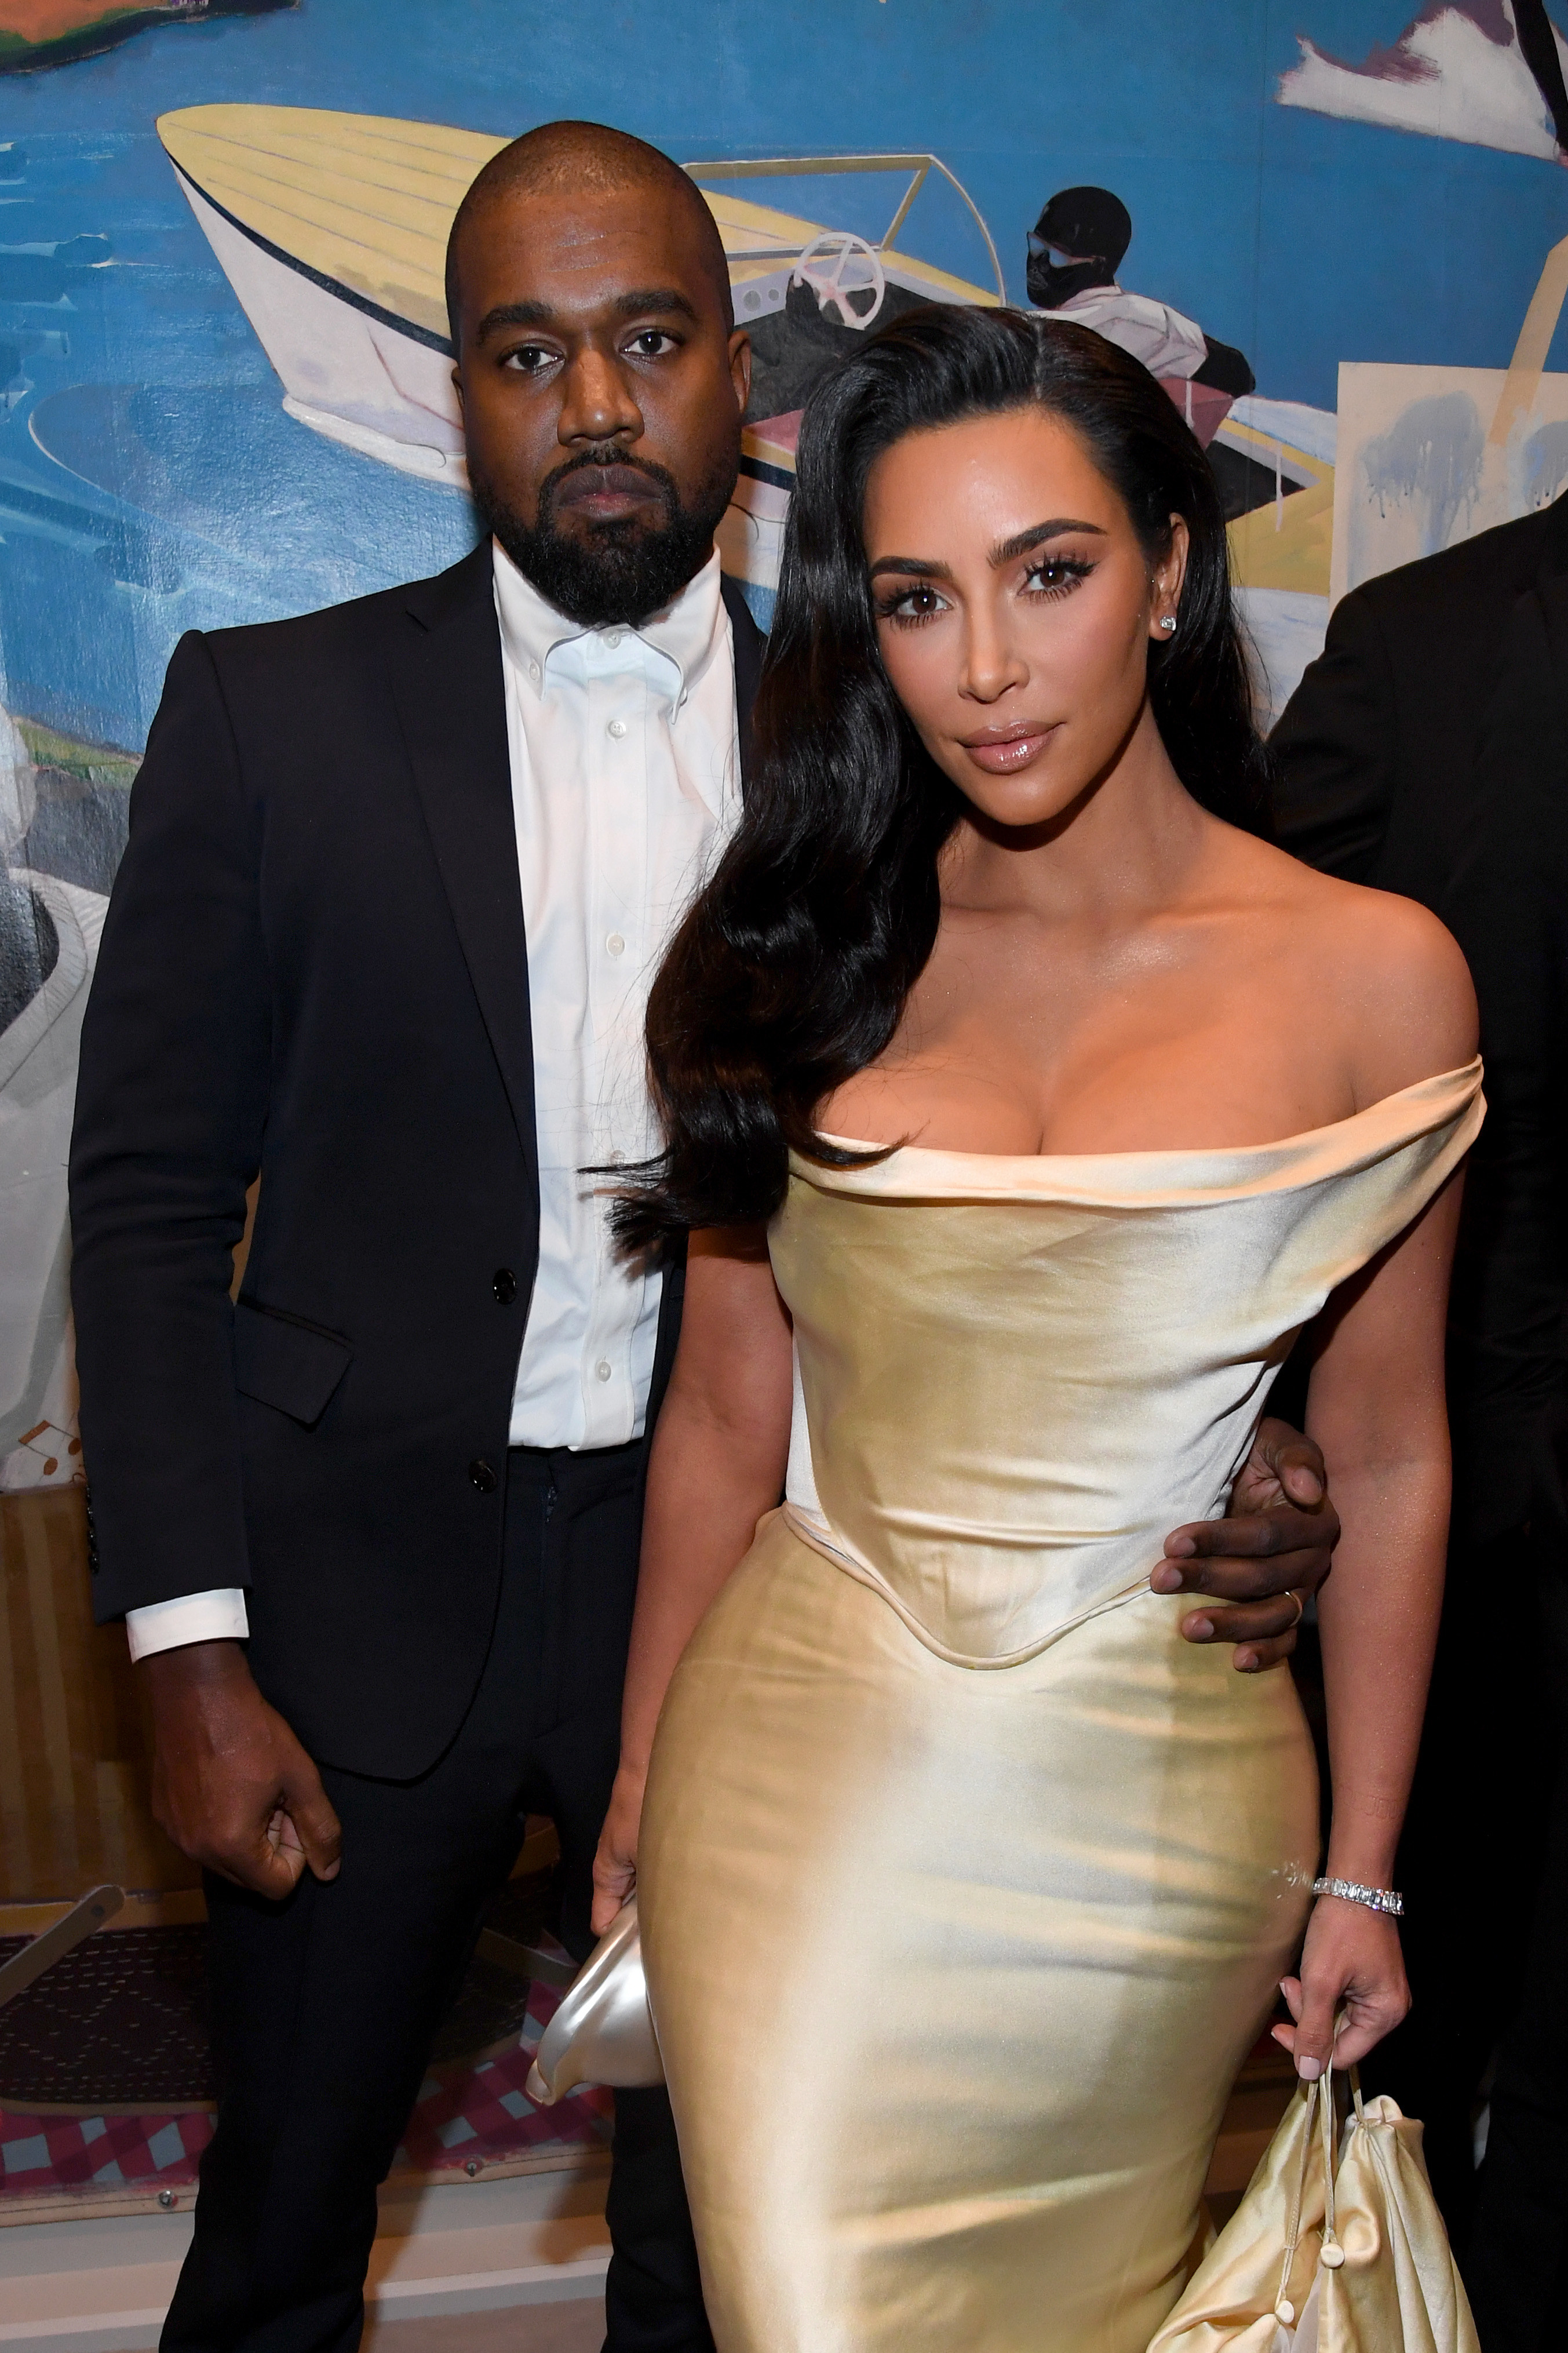 Kanye, in a black suit and white shirt, stands next to Kim, in a gold dress